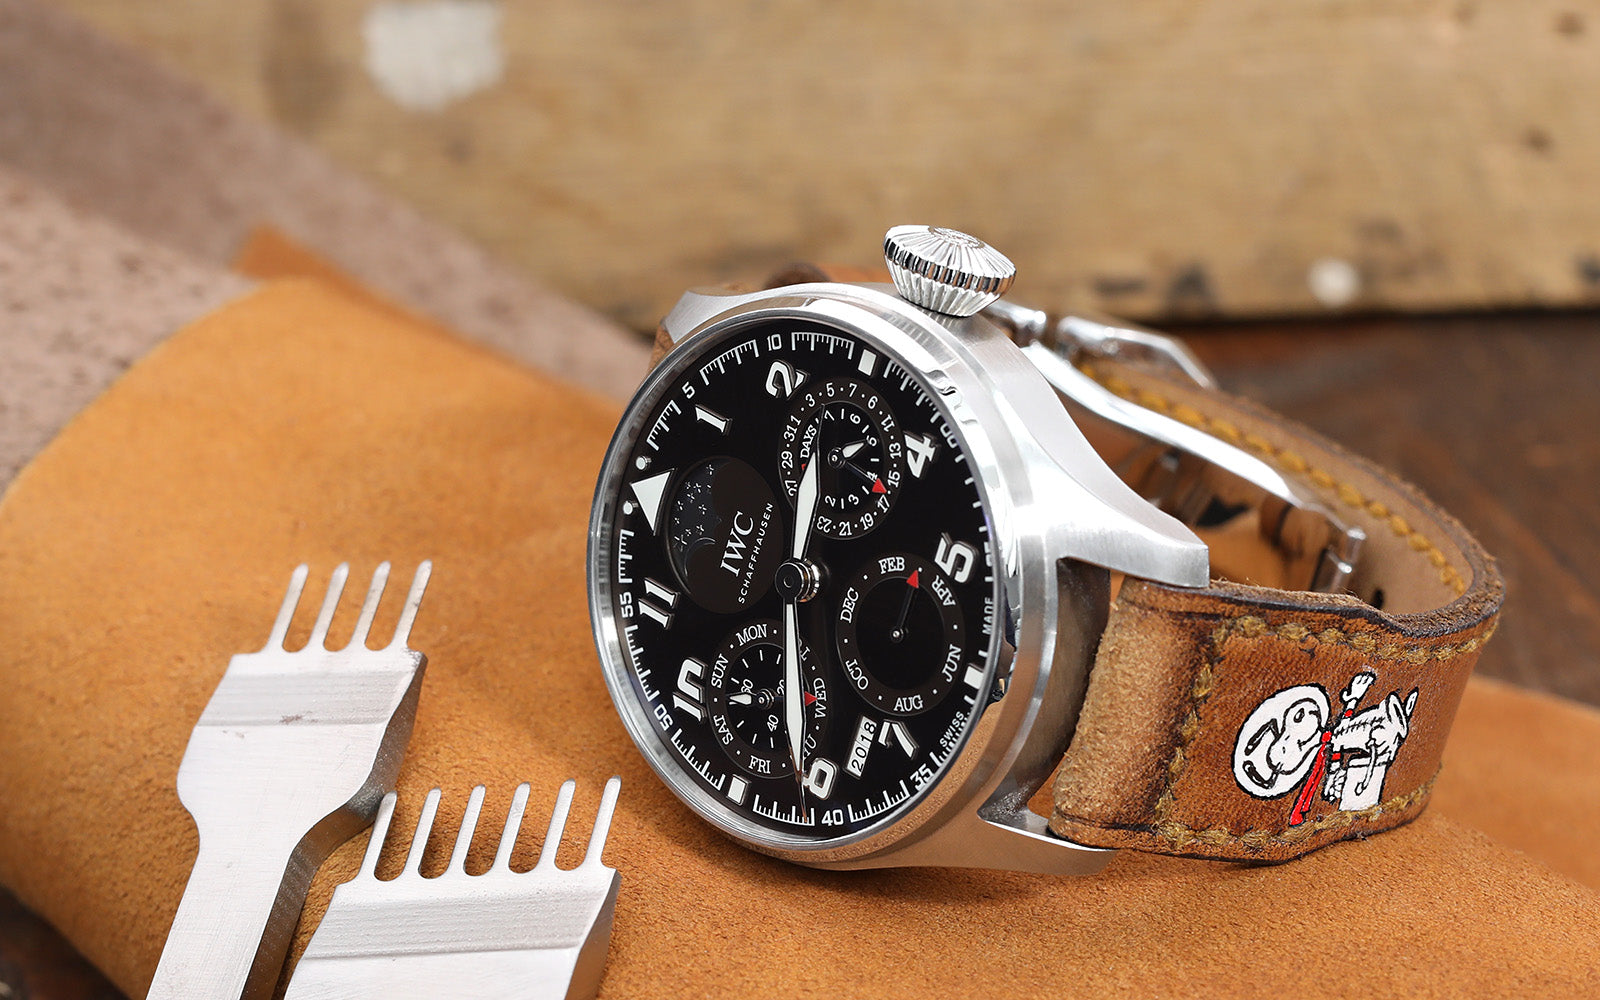 For IWC Big Pilot